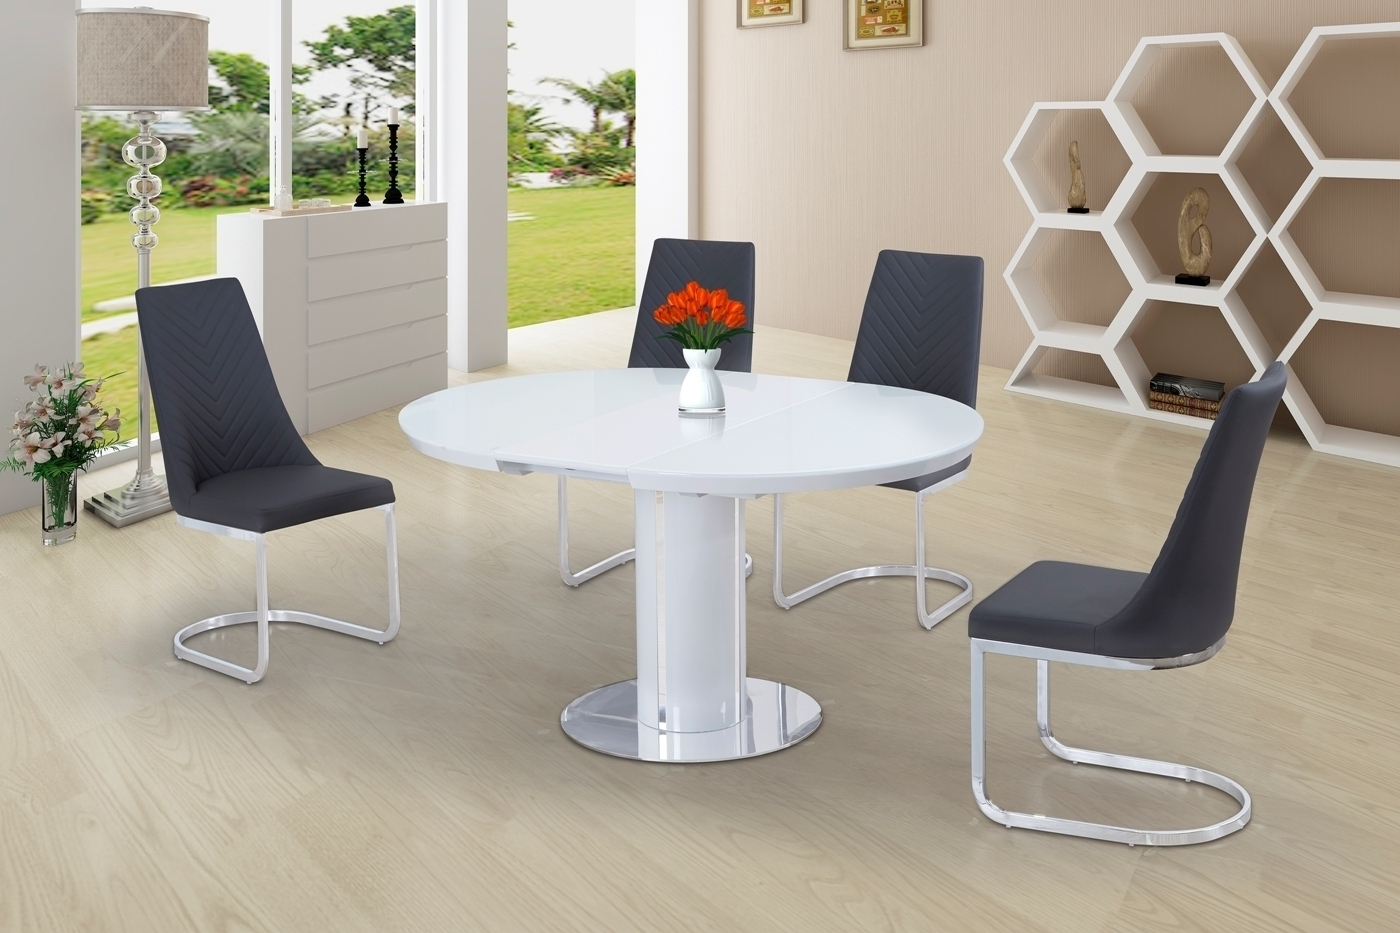 Most Recently Released Round White Glass High Gloss Dining Table And 6 Grey Chairs Regarding White High Gloss Oval Dining Tables (View 12 of 25)